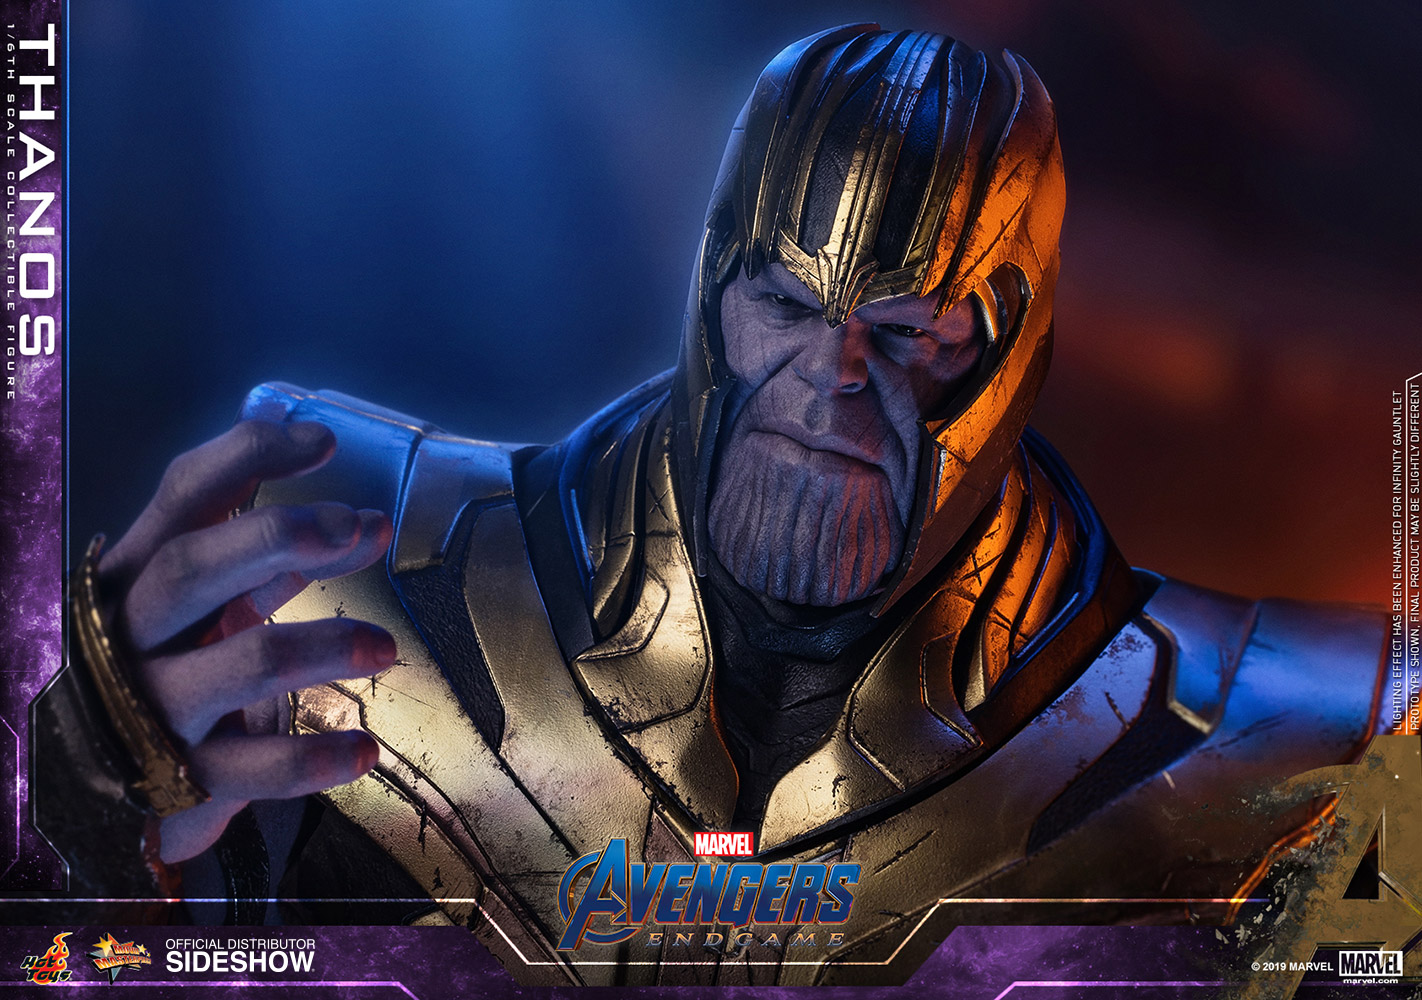 Marvel Thanos Sixth Scale Figure By Hot Toys Sideshow Collectibles